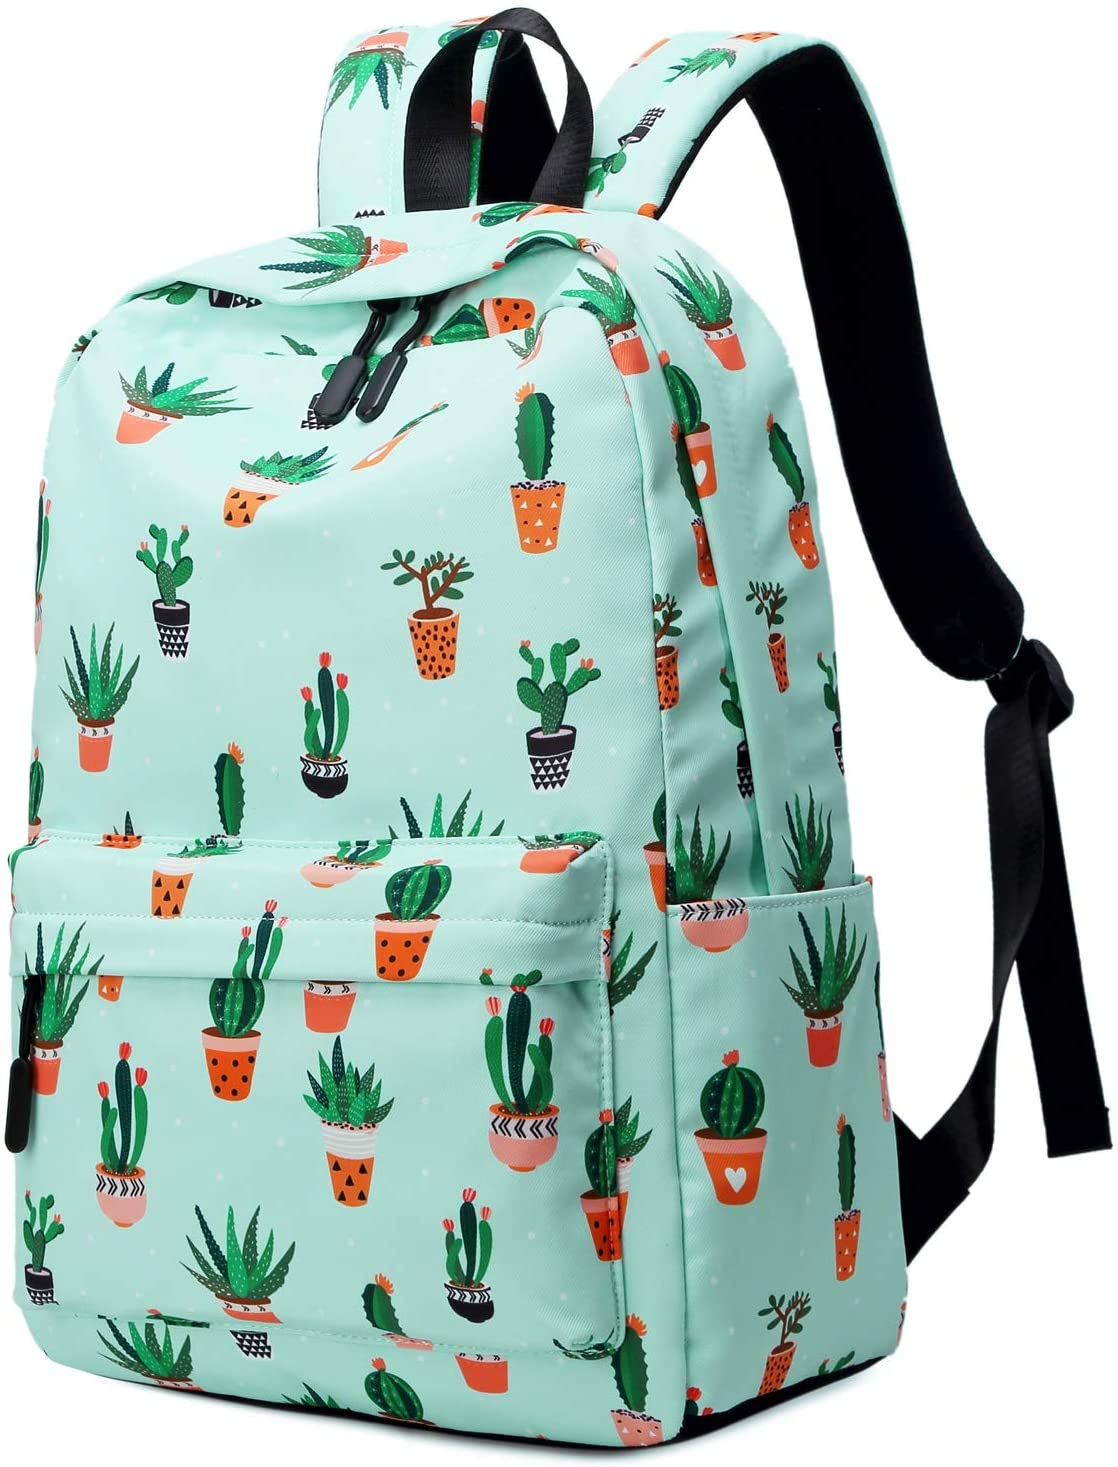 FLYMEI Cute Backpack for Girls, Cactus Backpack for School, Lightweight Teens Bookbags 15.6 Inch Laptop Backpack for Women, Kawaii Backpack